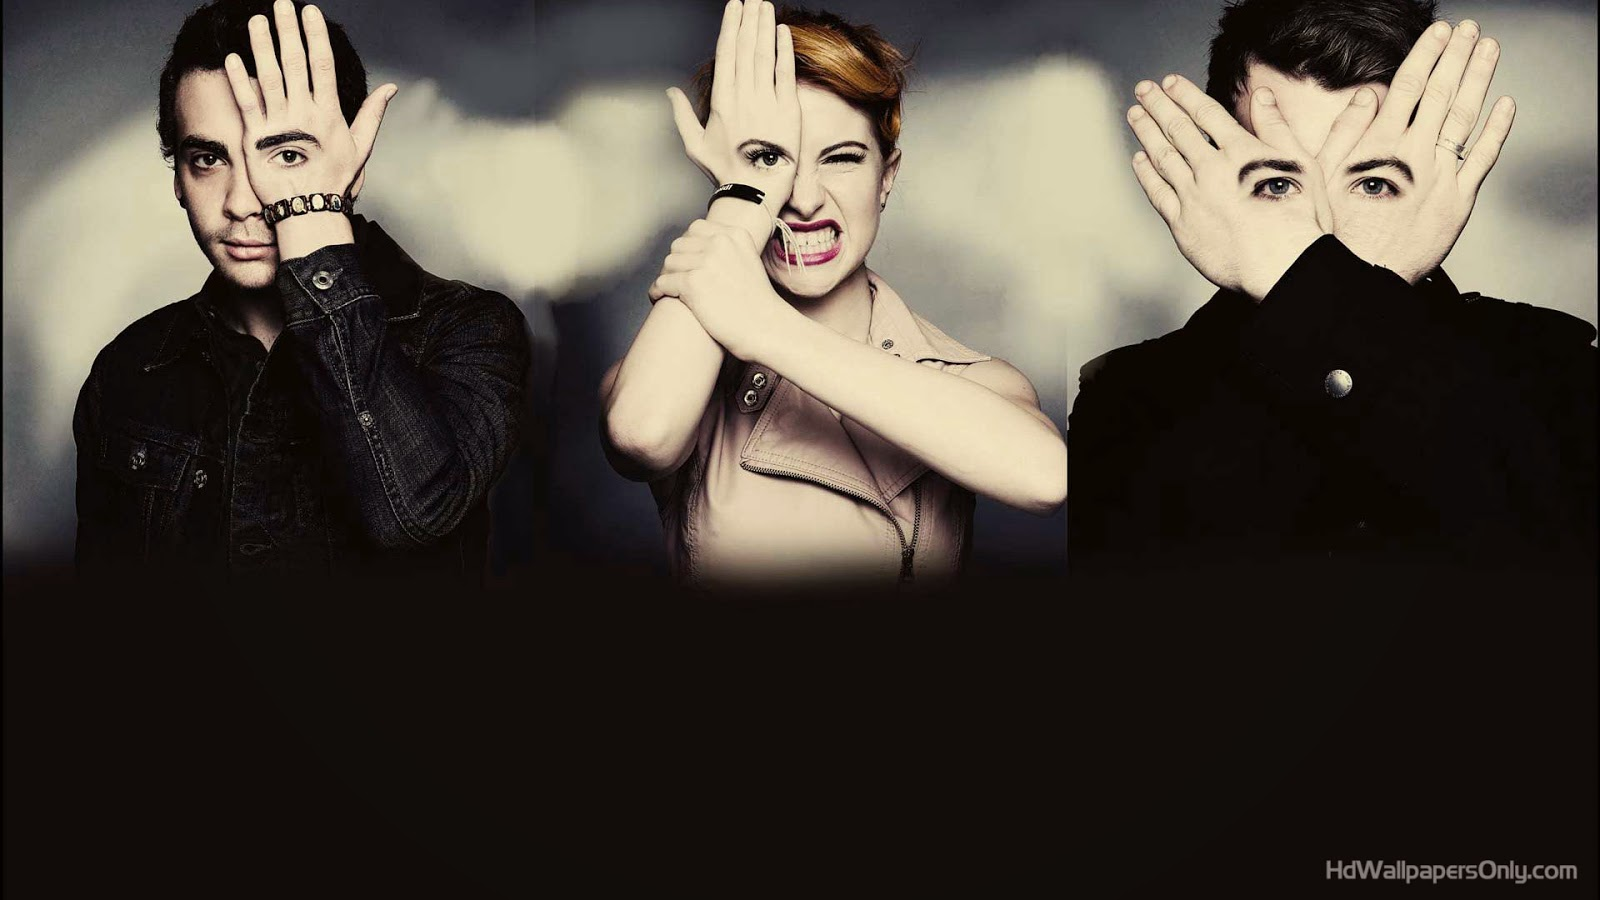 paramore hd 2014 wallpaperParamore Tumblr 2014